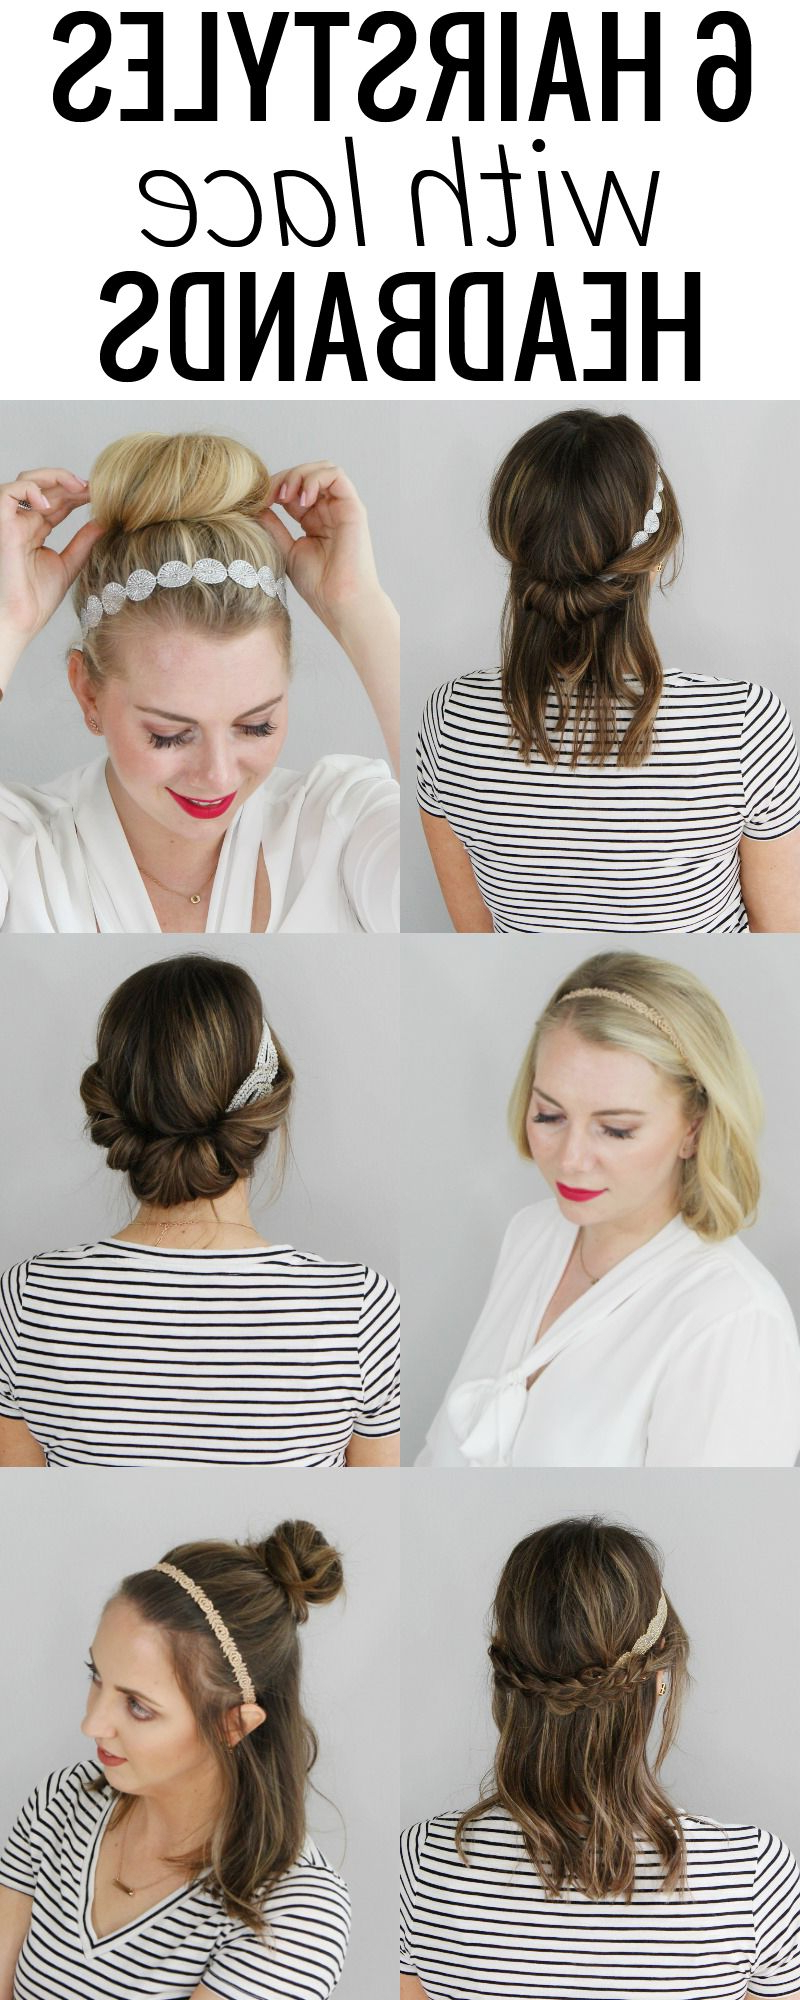 2018 Cute Medium Hairstyles With Headbands Pertaining To 6 Hairstyles With Lace Headbands – Each Hairstyle Is Super Chic And (View 10 of 20)